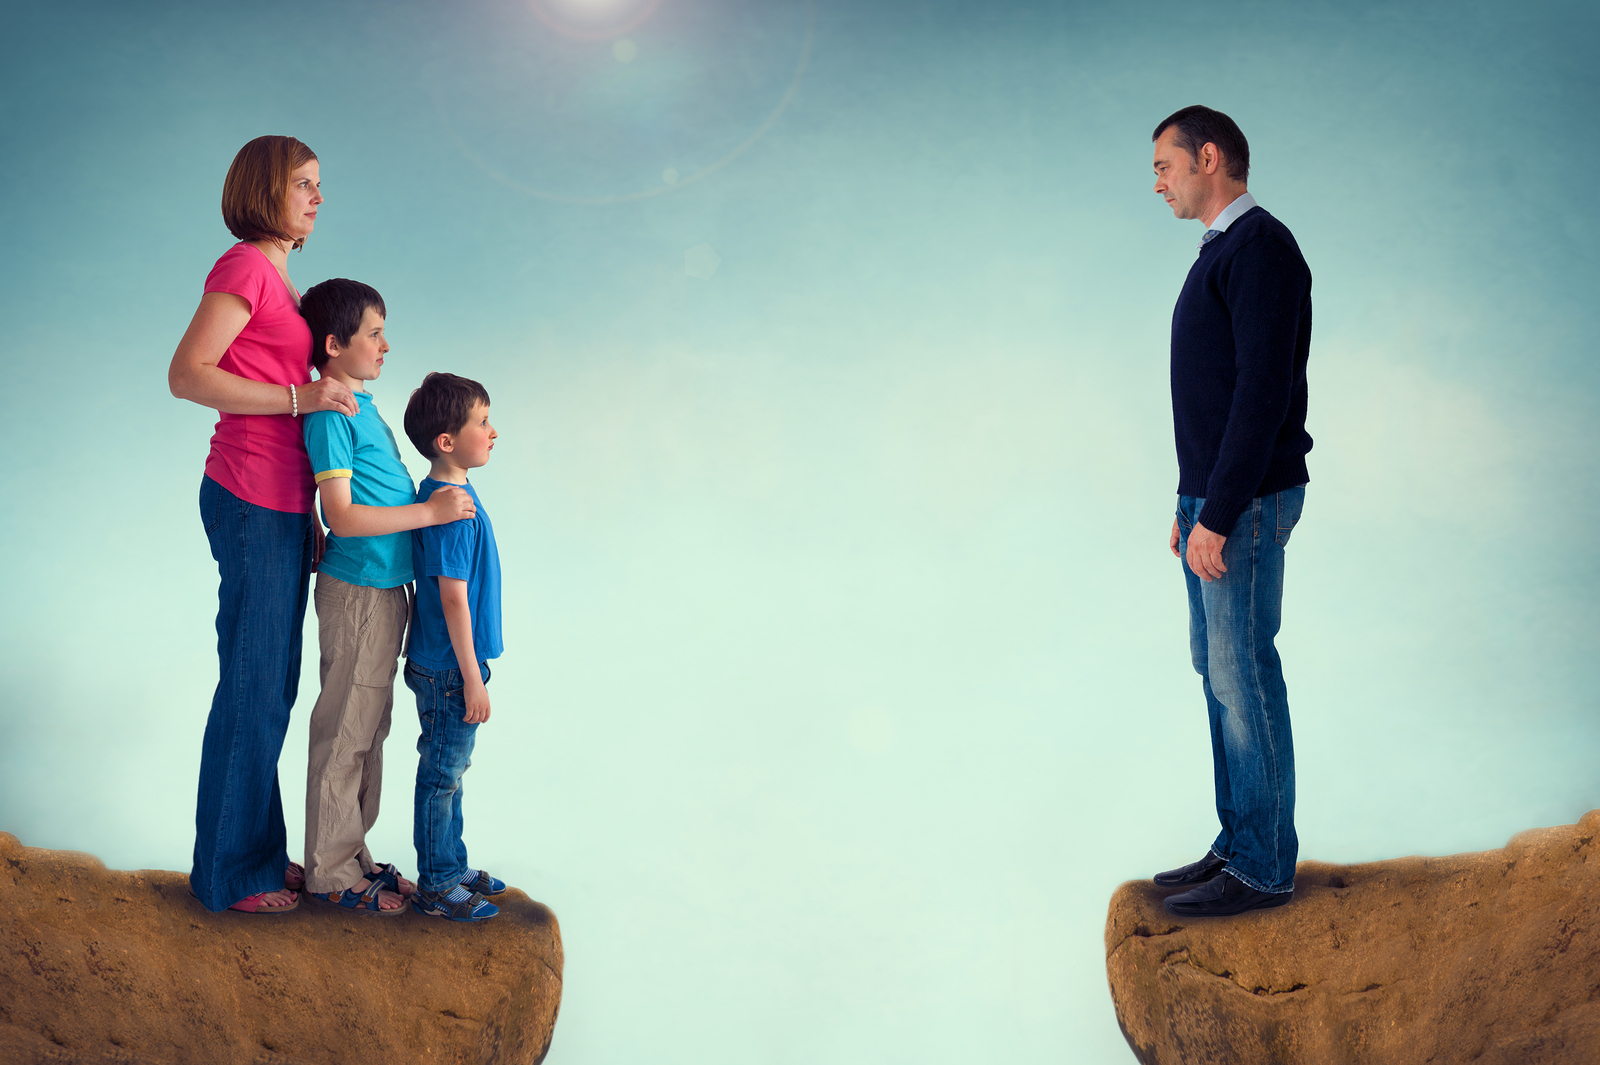 What happens to children when they encounter a truly stressful situation?